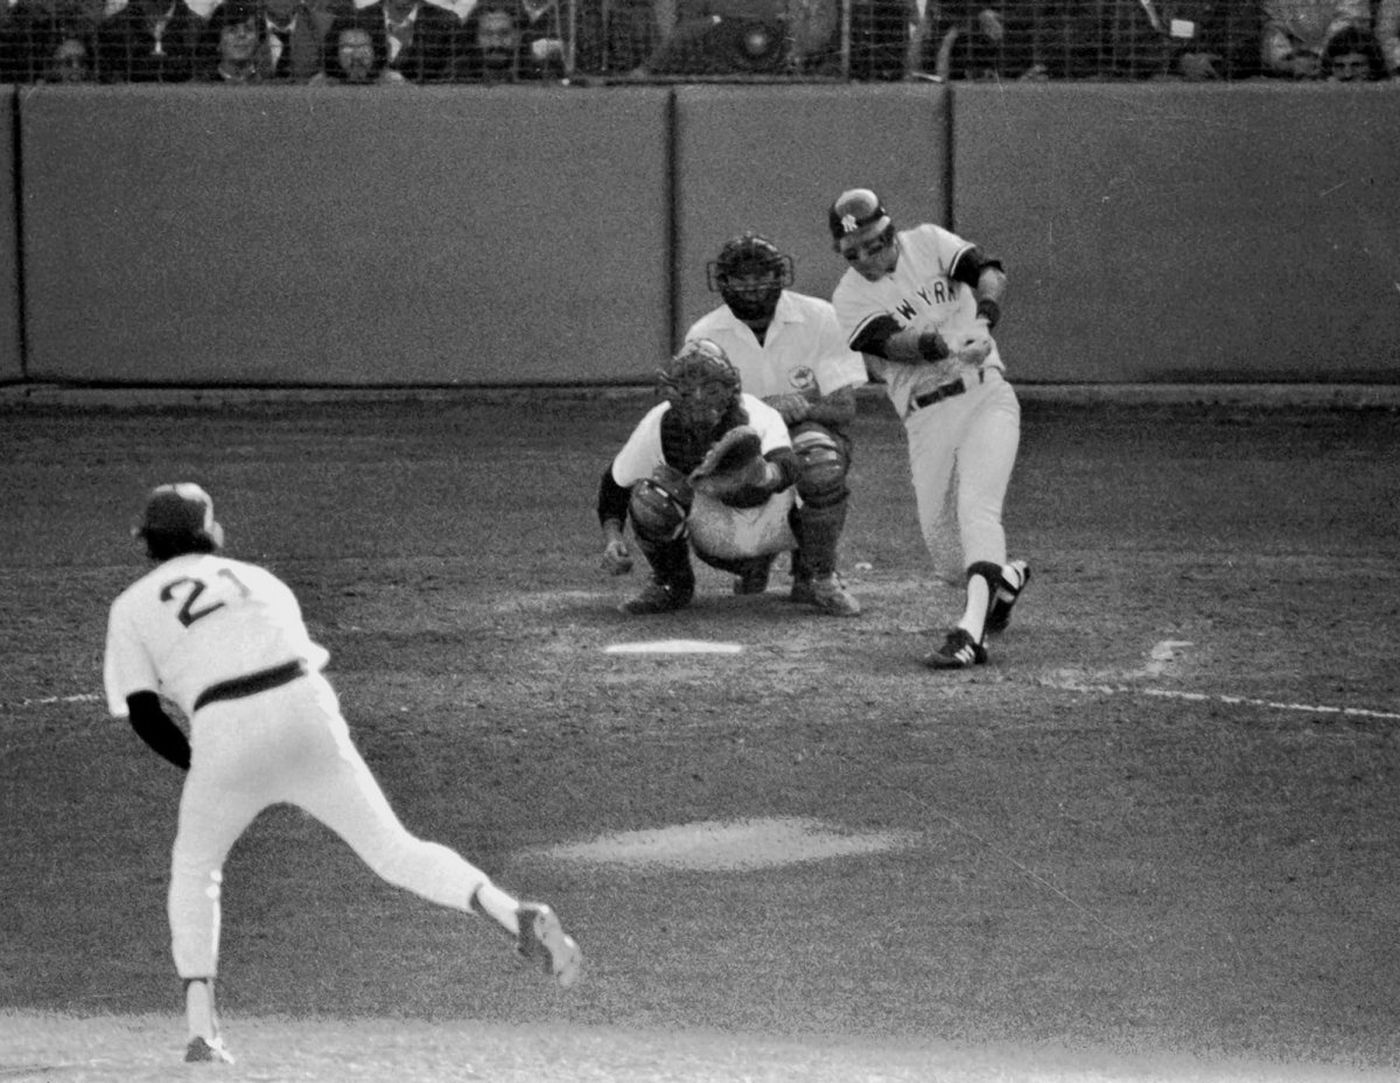 Bucky Dent connects for a go-ahead home run in the 1978 AL East tiebreaker at Fenway Park (MLB.COM)